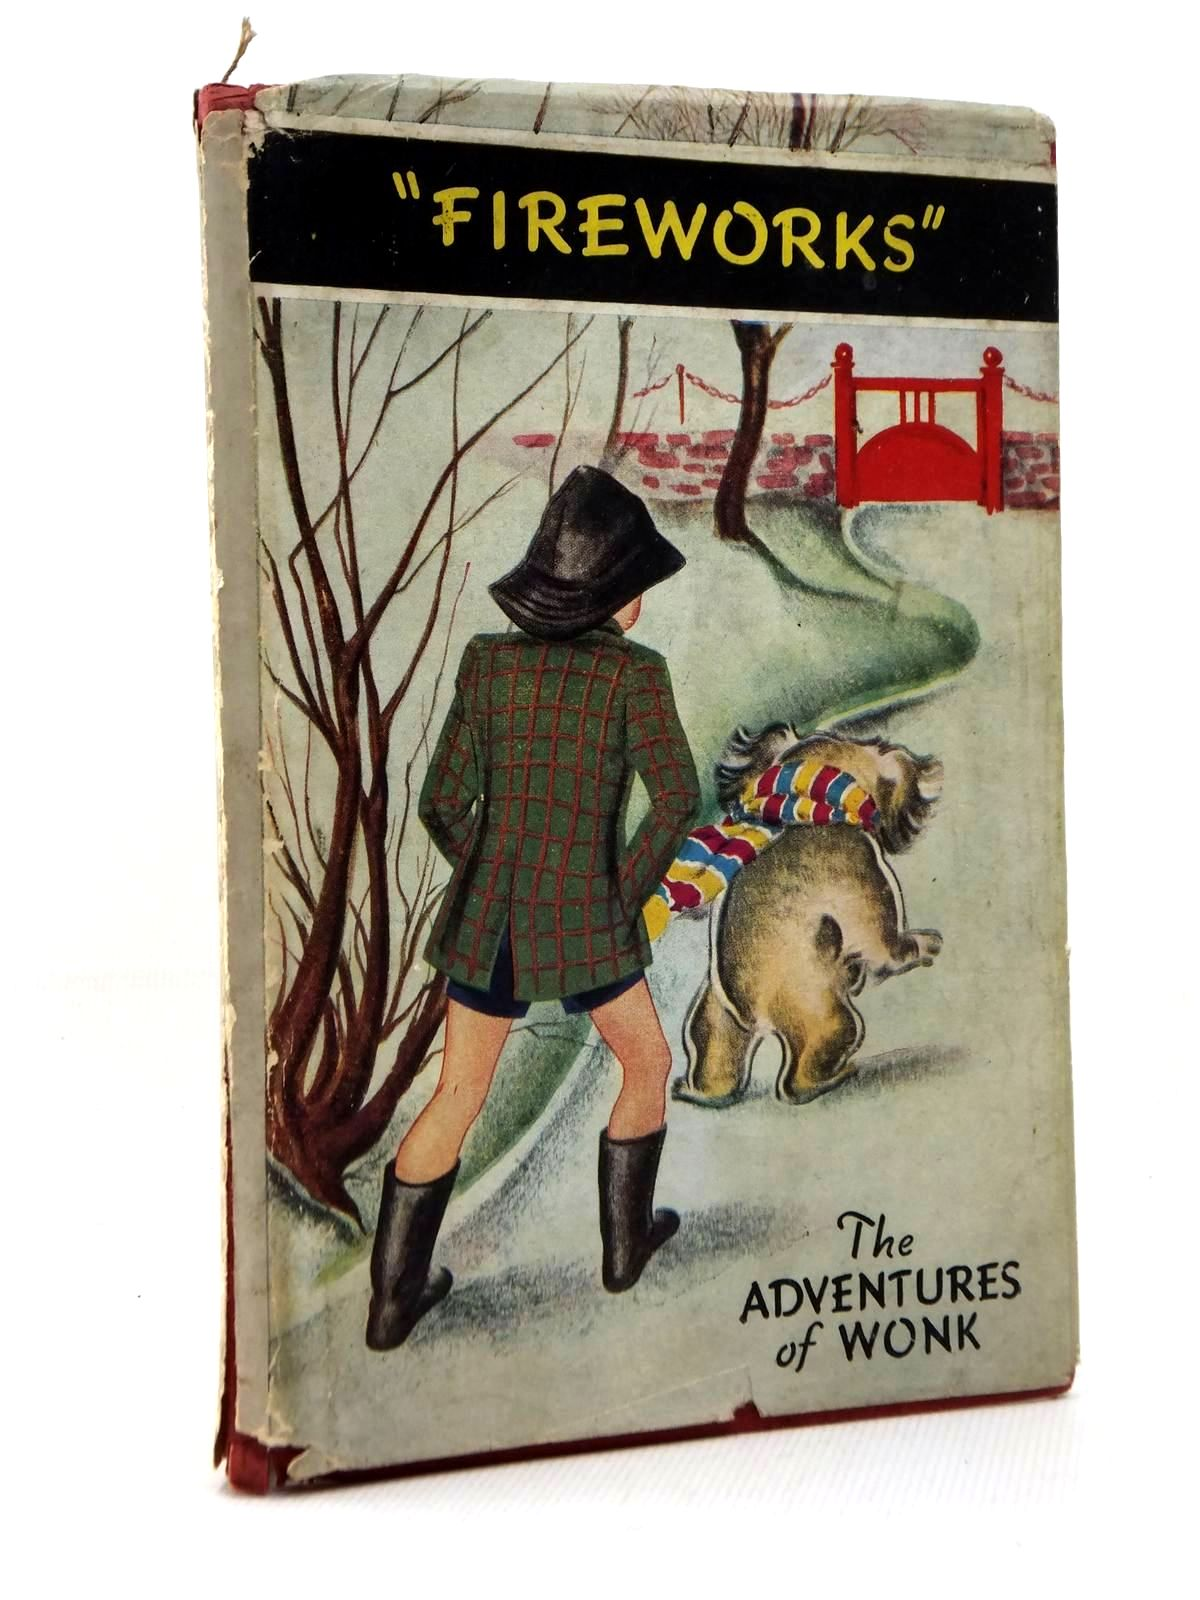 Photo of THE ADVENTURES OF WONK - FIREWORKS written by Levy, Muriel illustrated by Kiddell-Monroe, Joan published by Wills & Hepworth Ltd. (STOCK CODE: 1208884)  for sale by Stella & Rose's Books